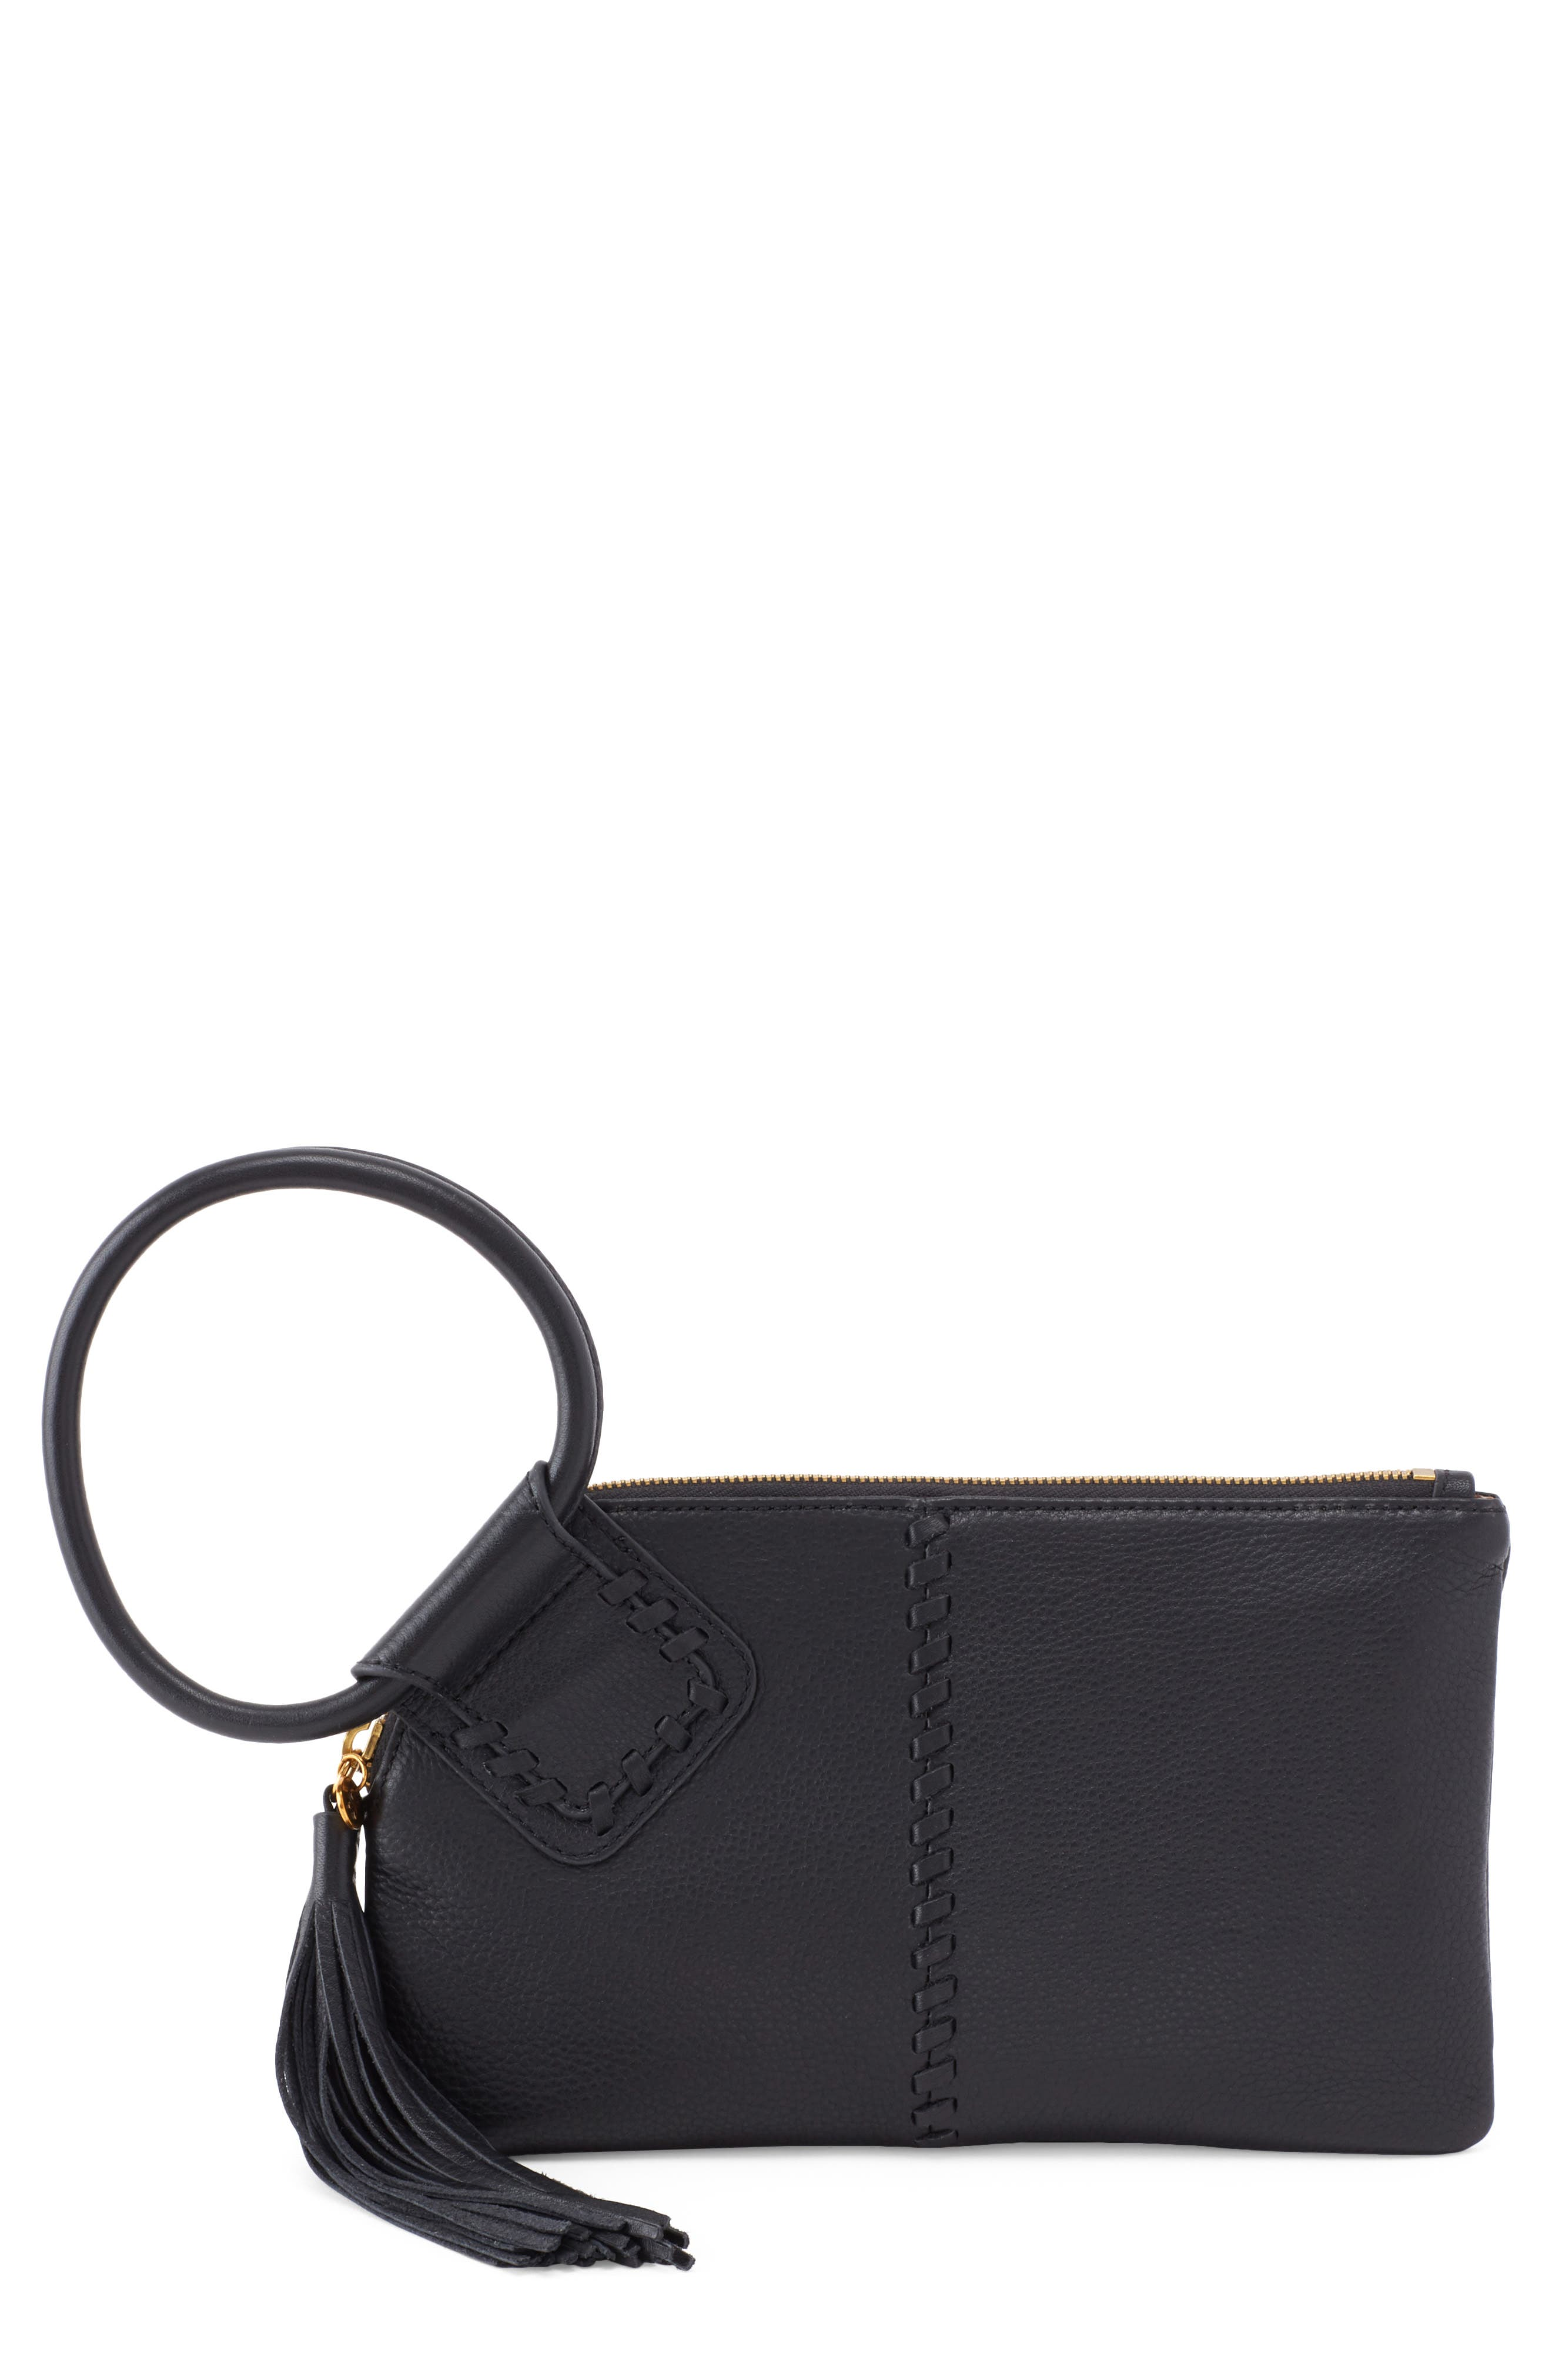 Storm Leather Clutch